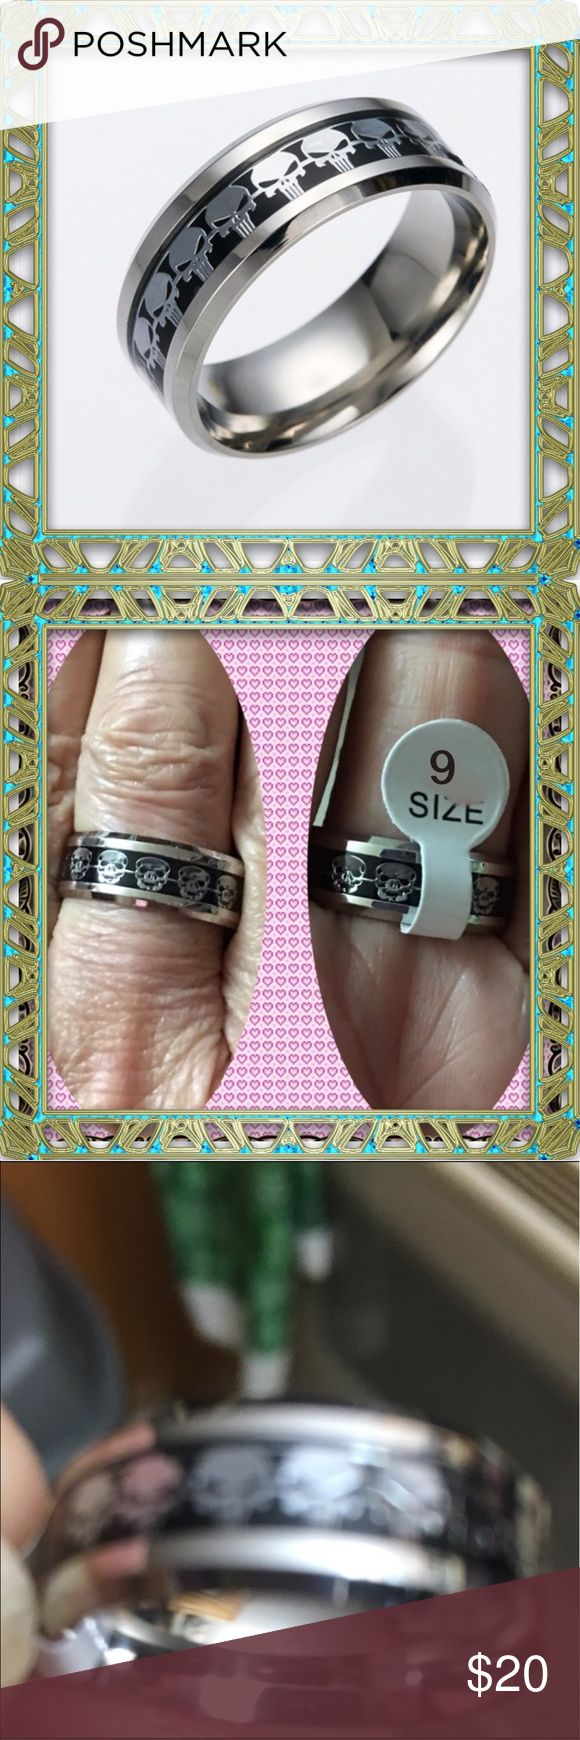 harley davidson wedding rings harley davidson wedding rings MAN STERLING SILVER SKULLS w BLK BACKGROUND NEW NWT SilverSterling SilverHarley DavidsonWedding RingEngagementSkulls